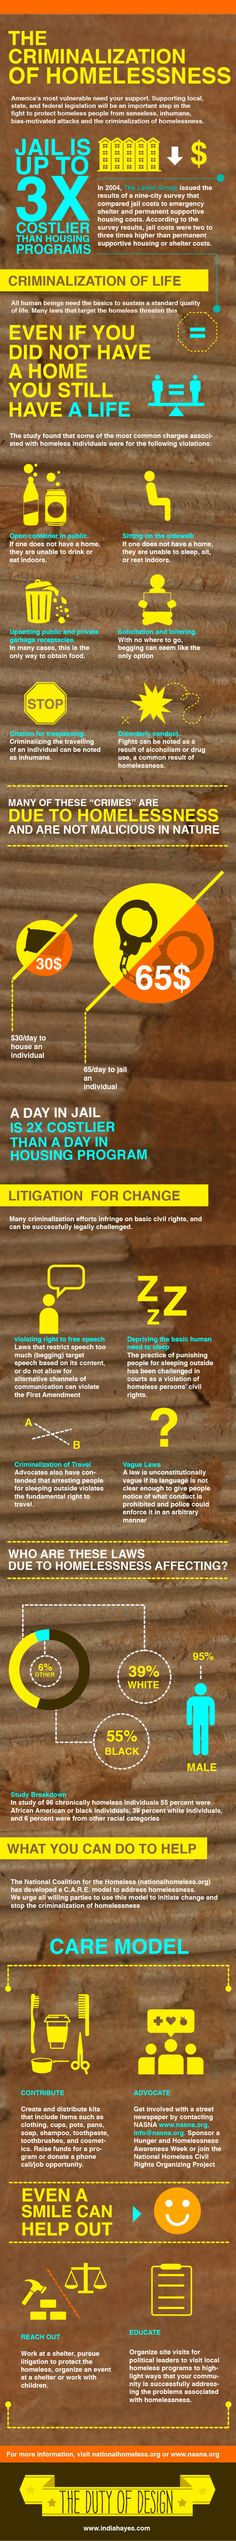 The Criminalization of Homelessness[INFOGRAPHIC]